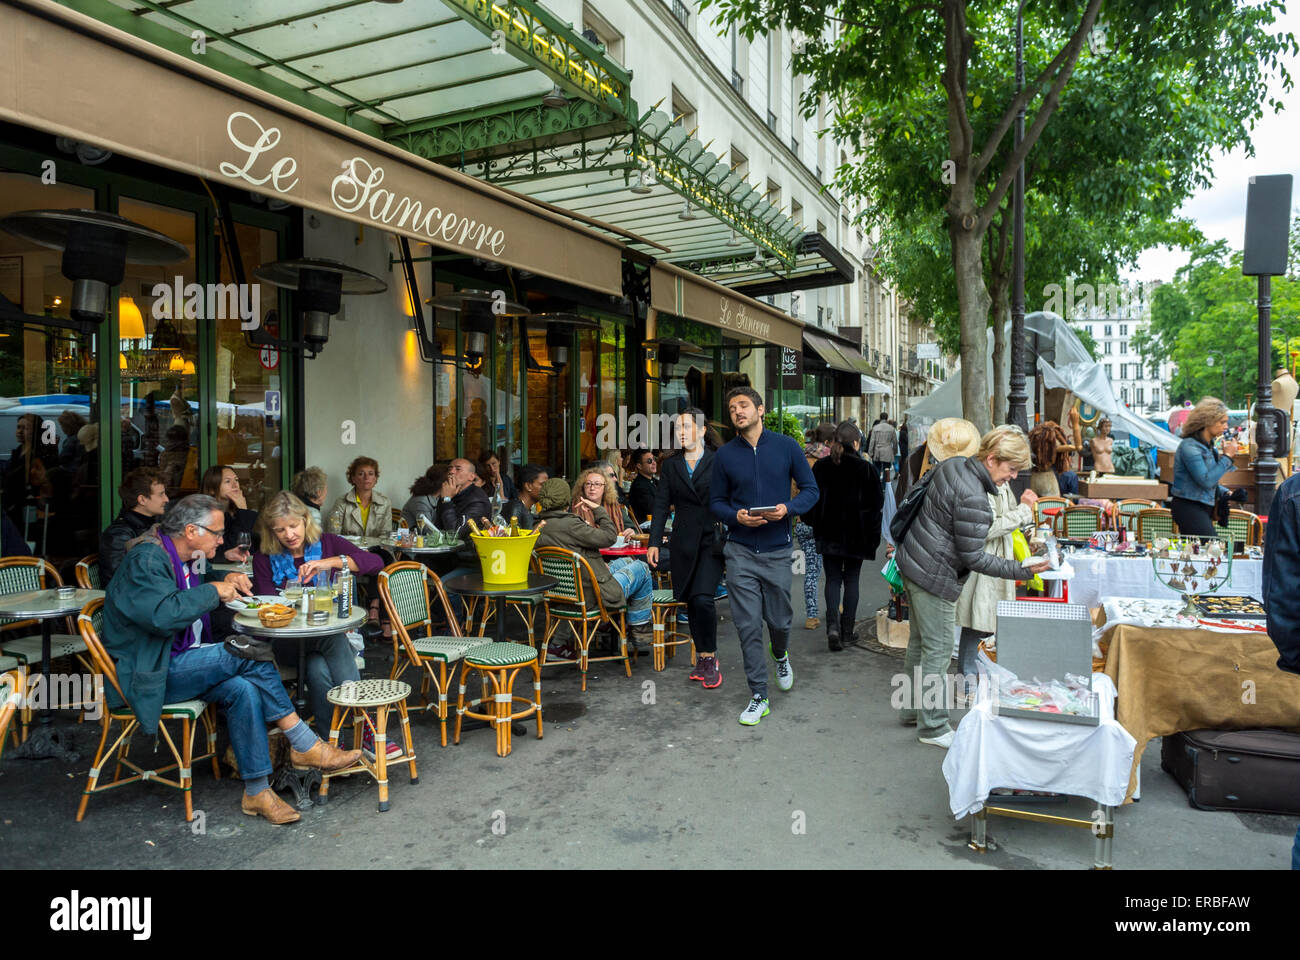 paris france people sharing meals on cafe terrace near french stock photo royalty free image. Black Bedroom Furniture Sets. Home Design Ideas